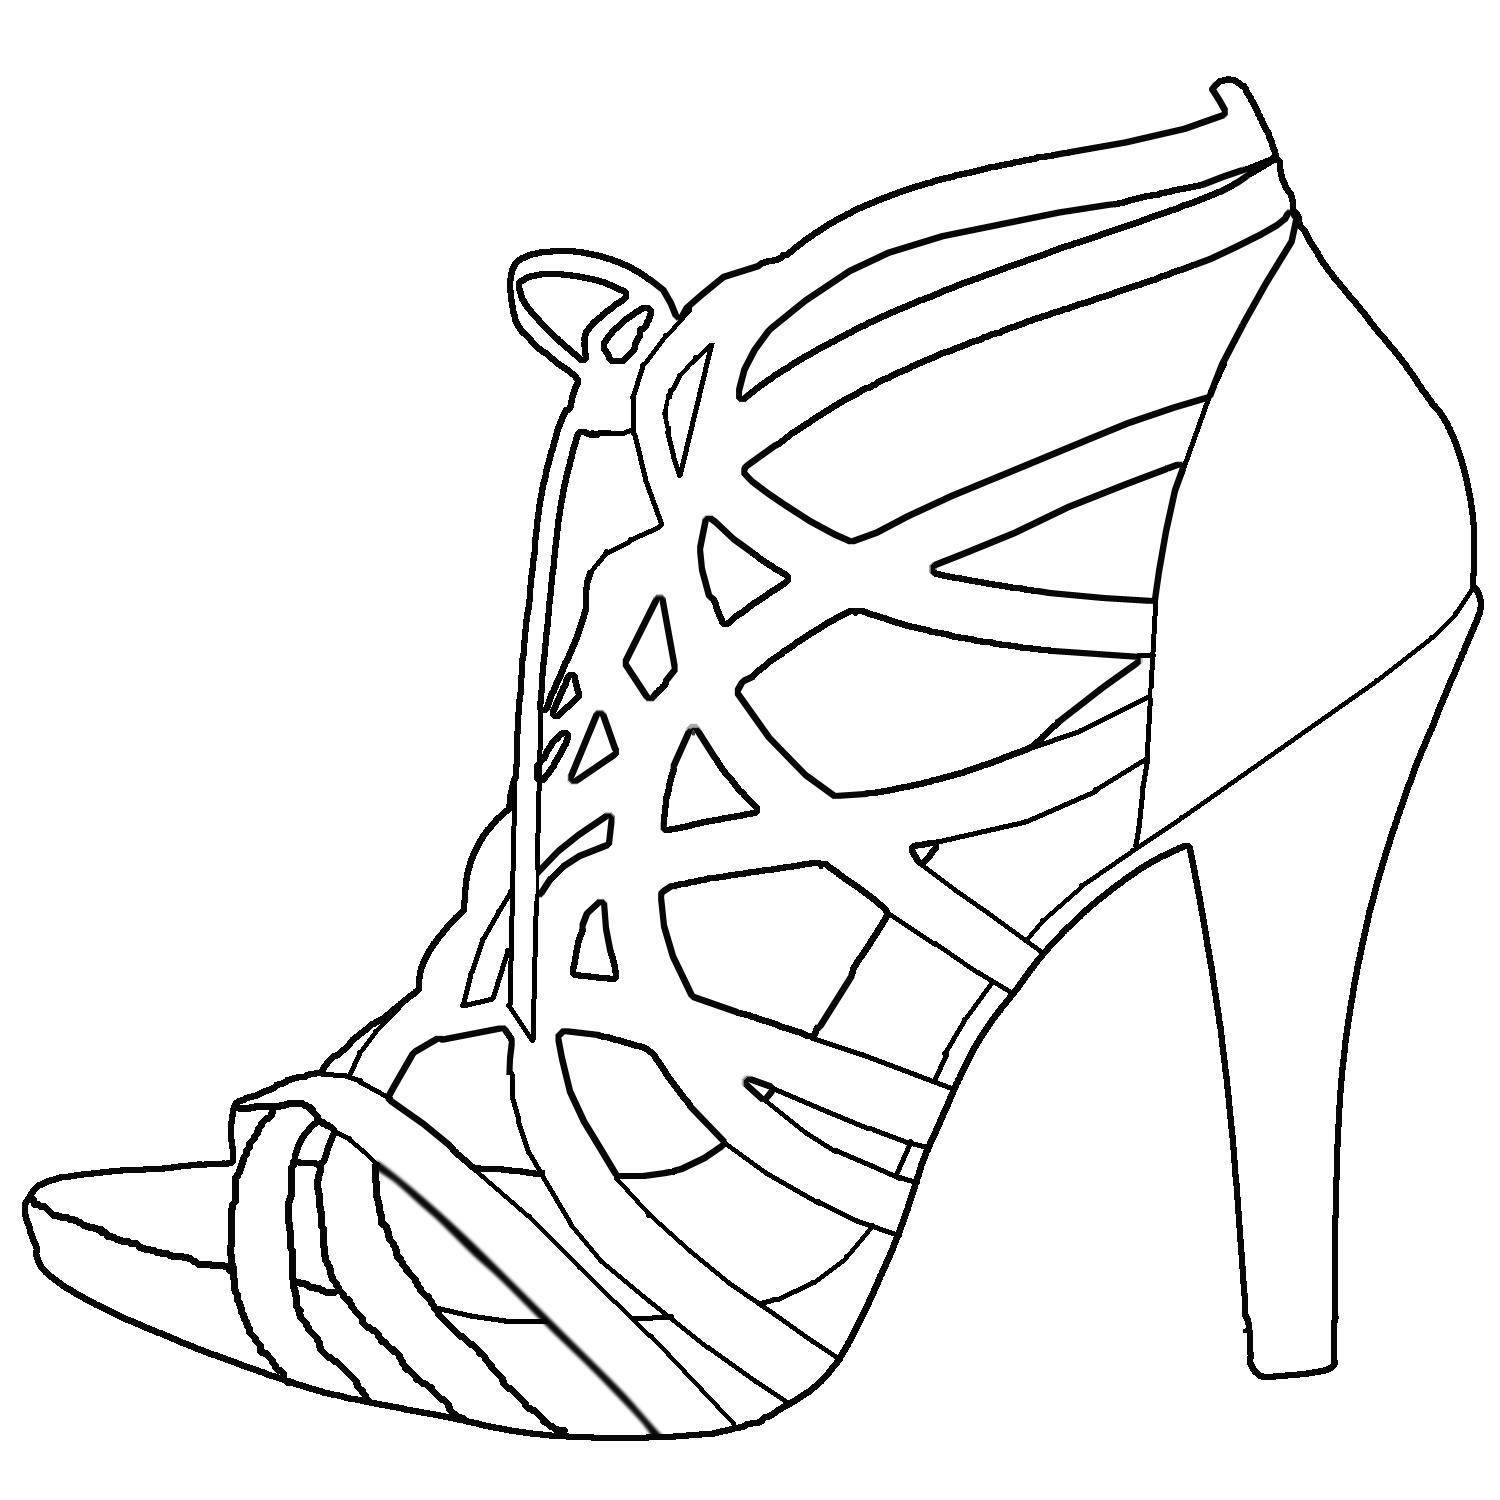 High heel drawing template at getdrawings free for personal 1500x1500 great high heel templates pictures inspiration maxwellsz